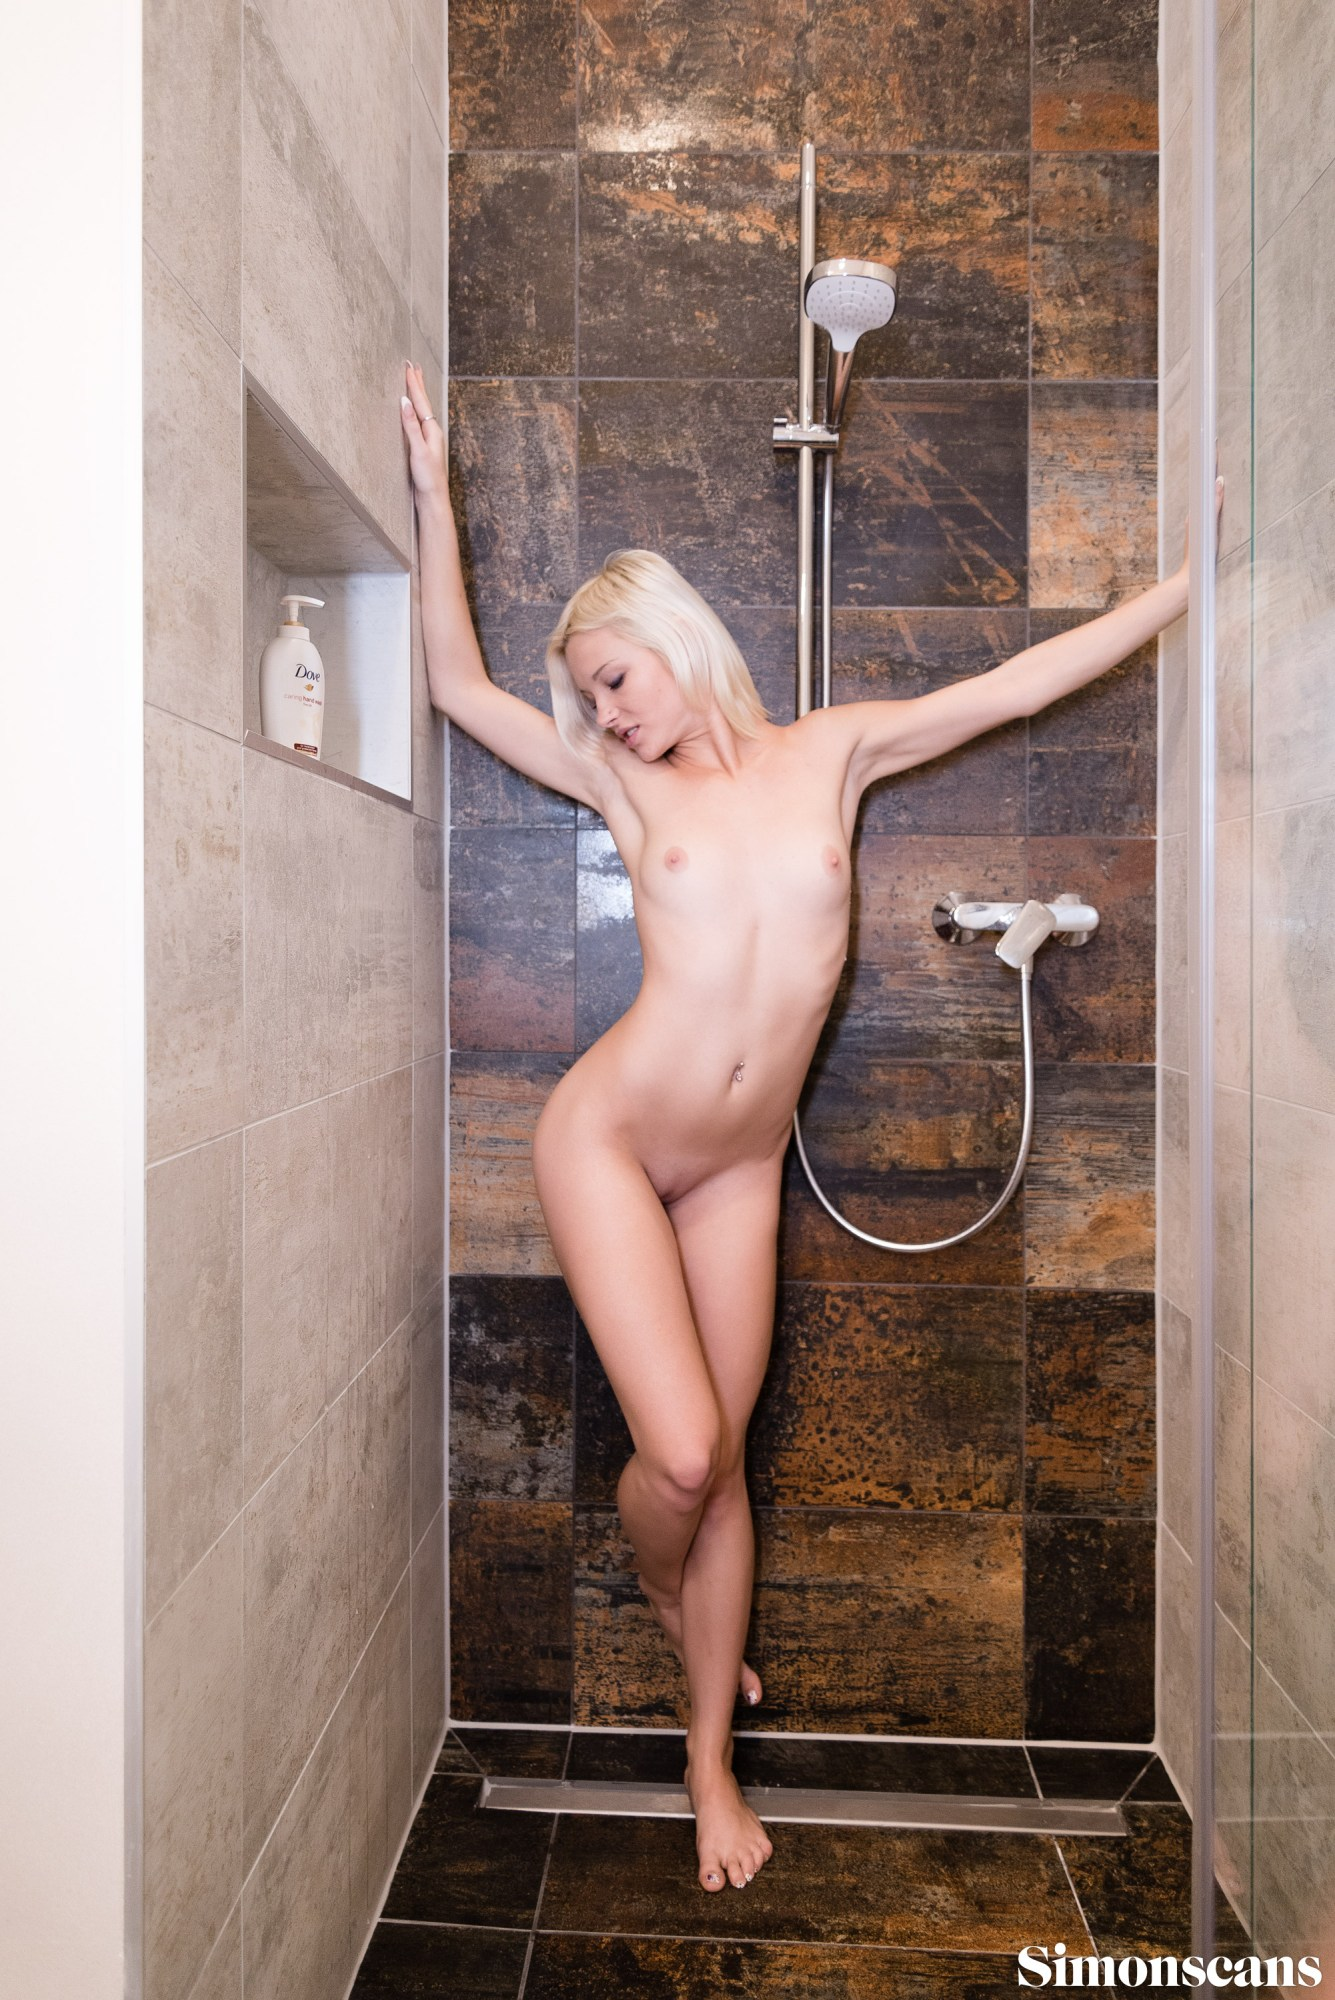 Azazie in the shower